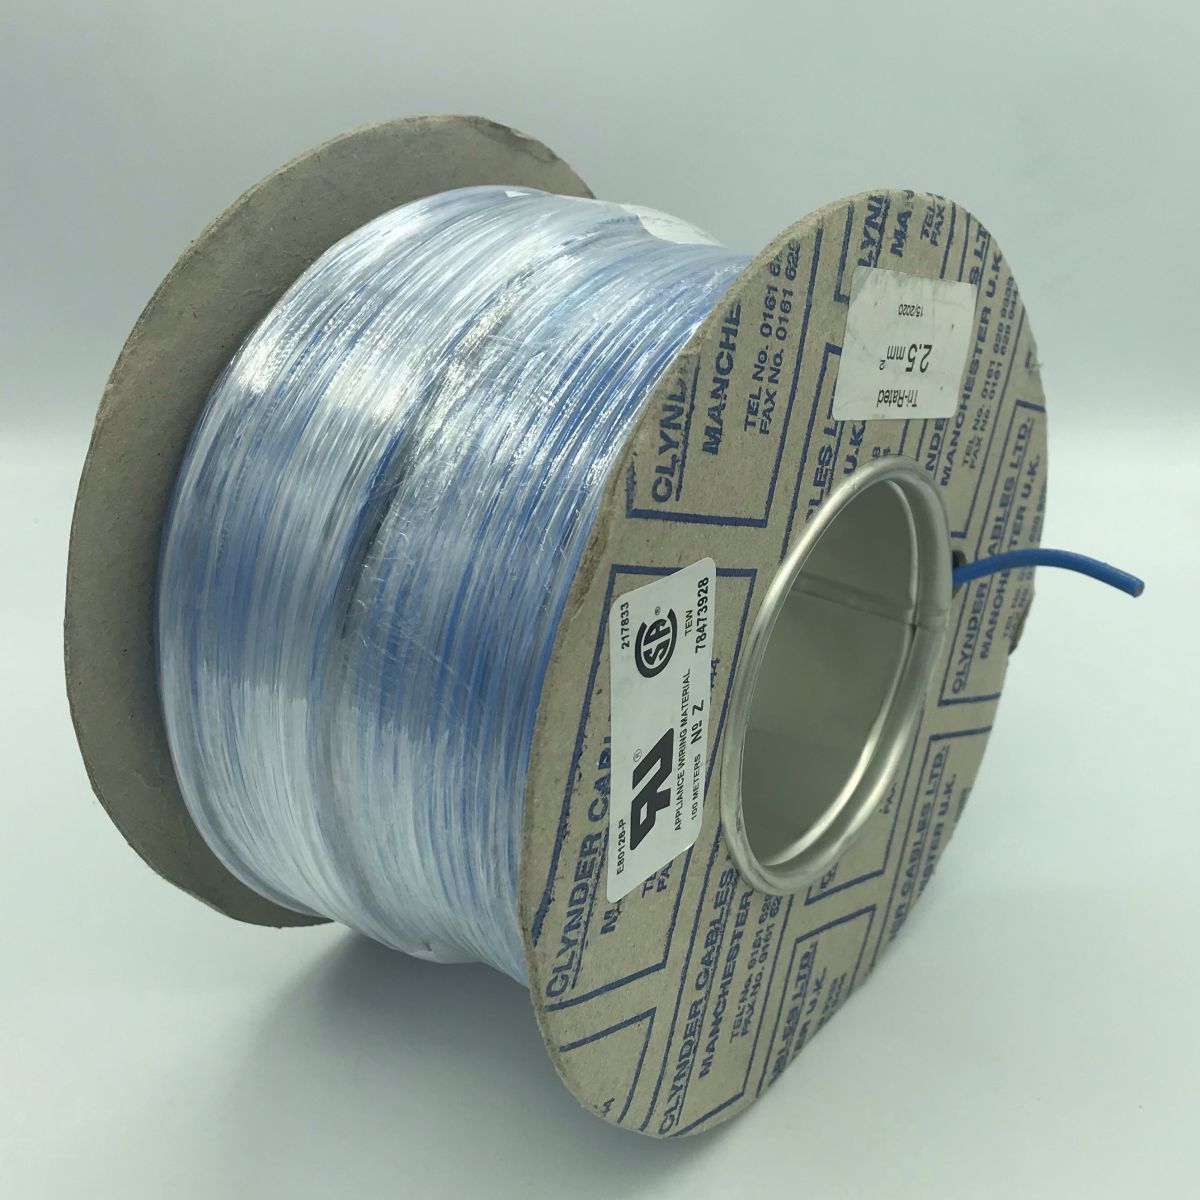 cable blue multistrand single core 25 sq no shielding not for cable chain